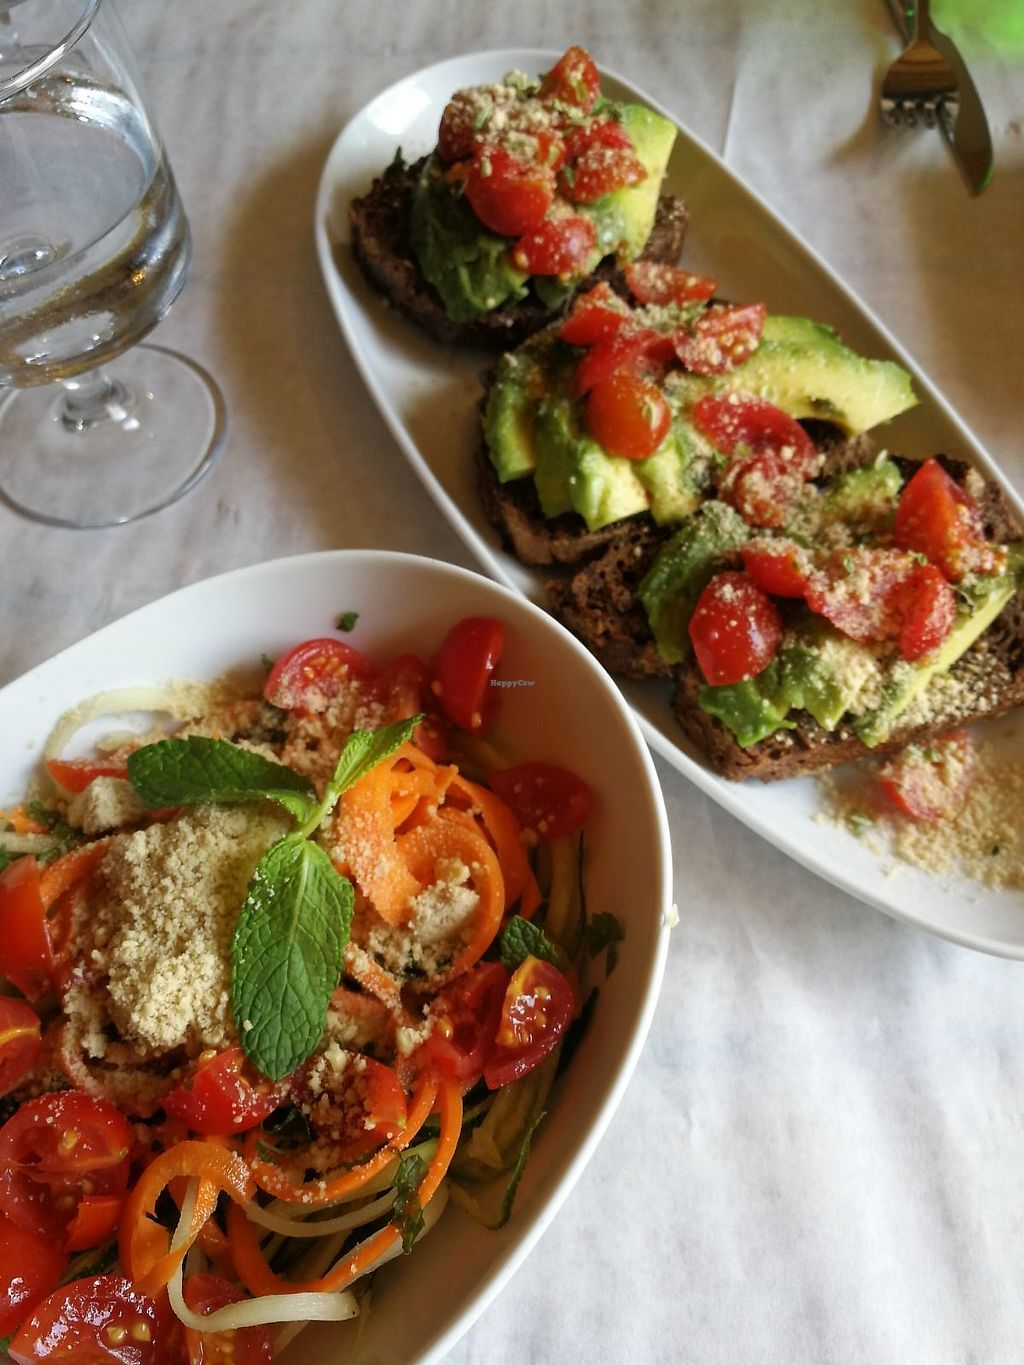 """Photo of Mó Veggie Bistro  by <a href=""""/members/profile/BlisterBlue"""">BlisterBlue</a> <br/>Zucchini salad with mint dressing  Avocado on toast <br/> September 14, 2017  - <a href='/contact/abuse/image/94852/304383'>Report</a>"""